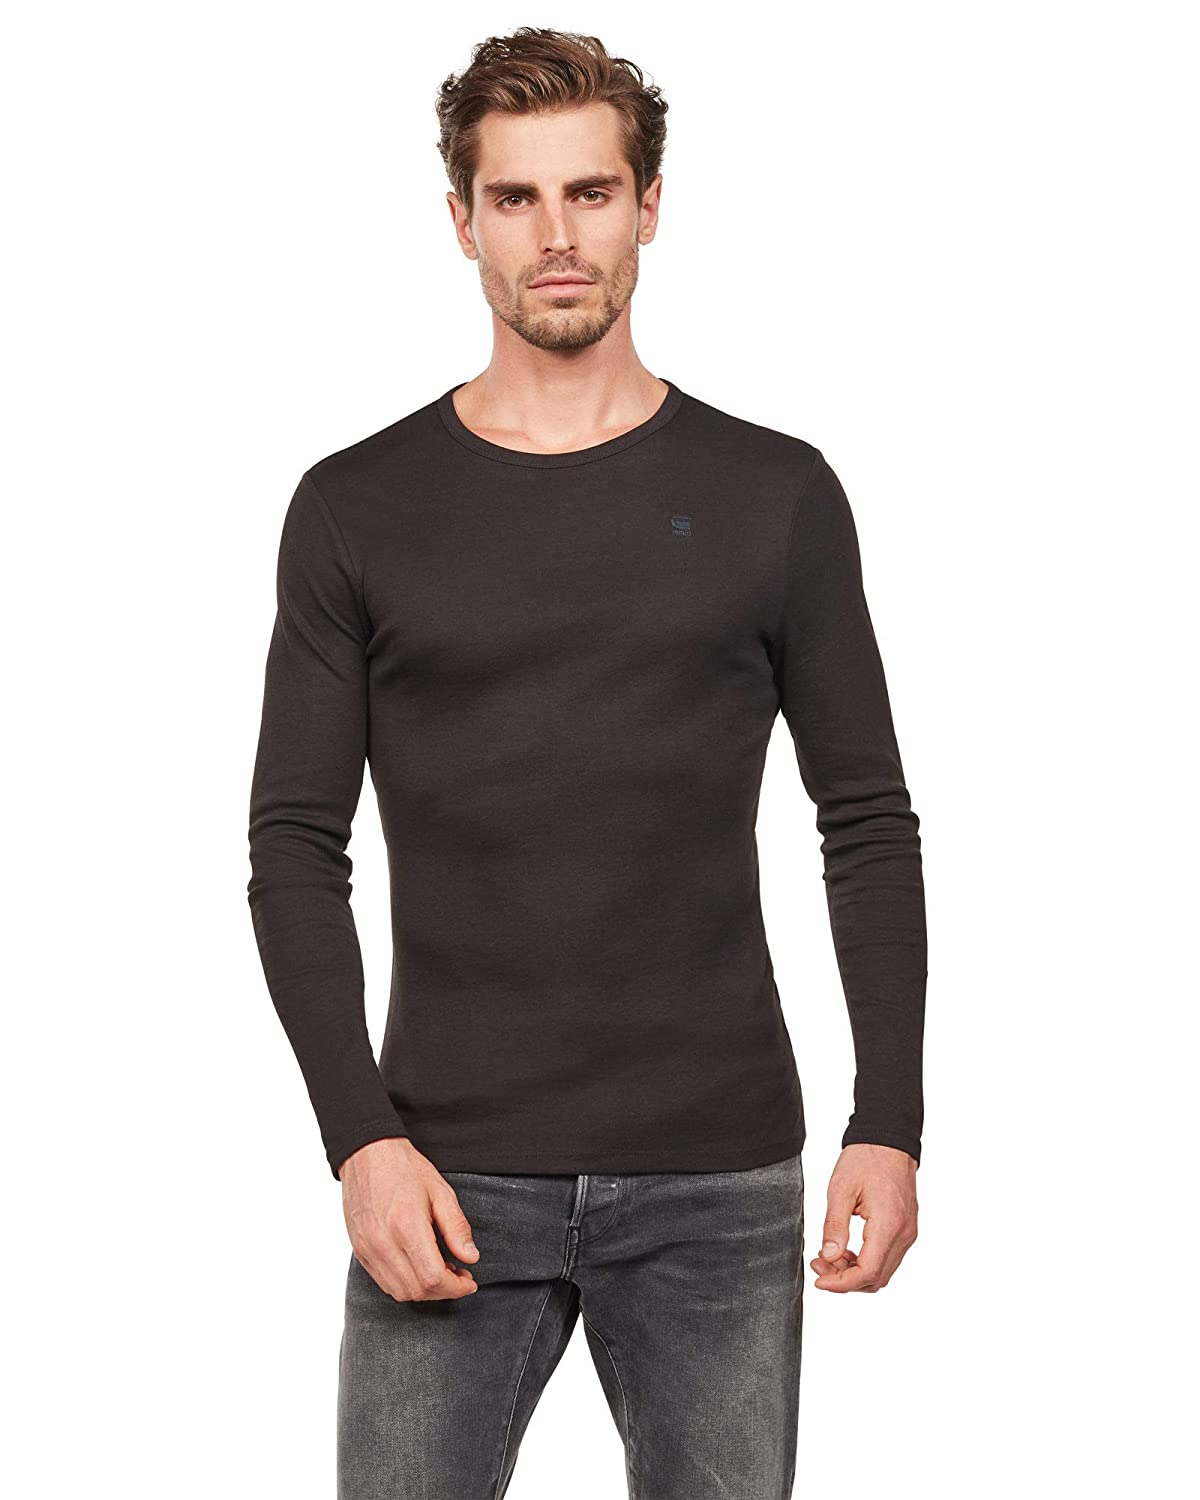 G-STAR RAW Base R T L/S 1-Pack Camisa Manga Larga para Hombre